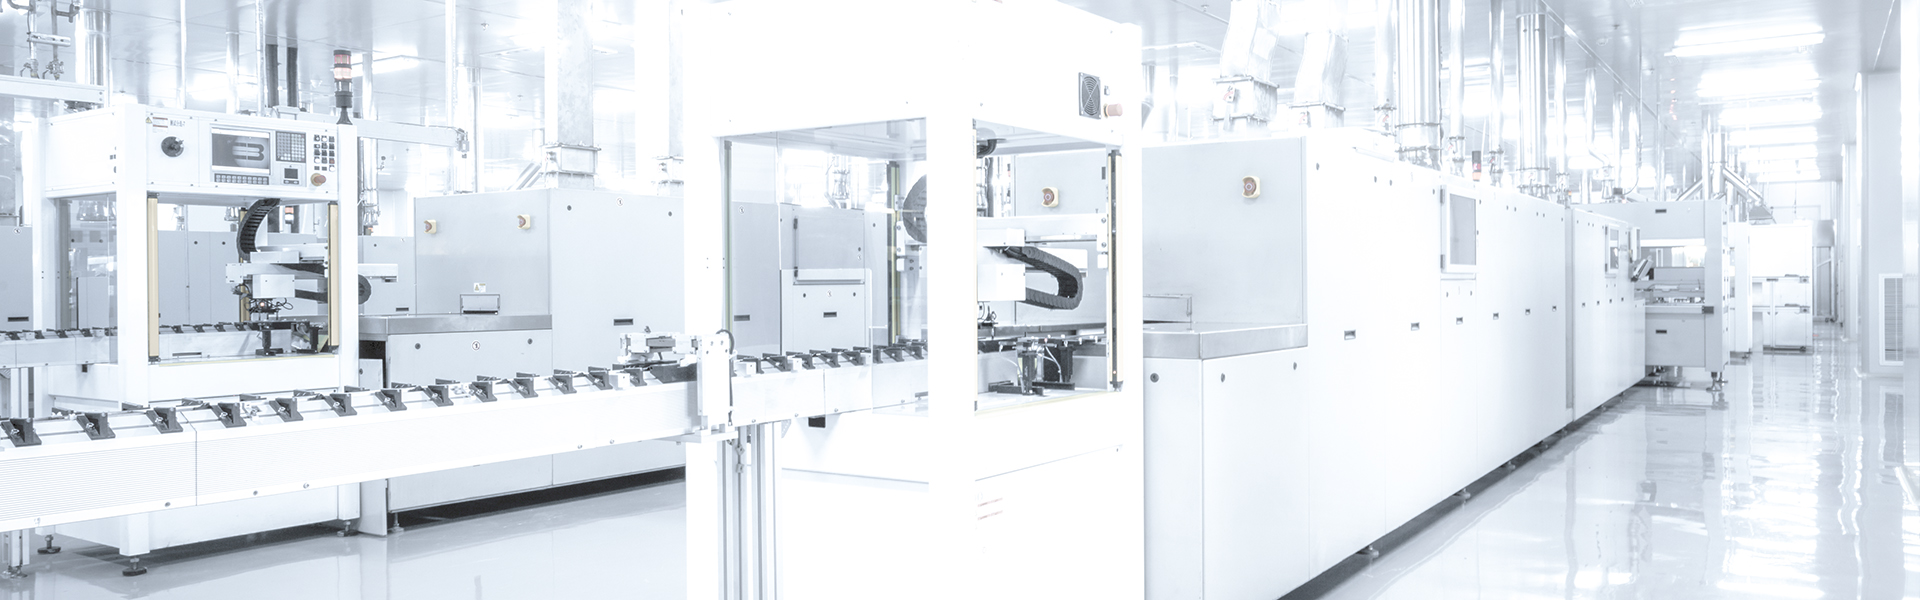 Sterile manufacturing environments